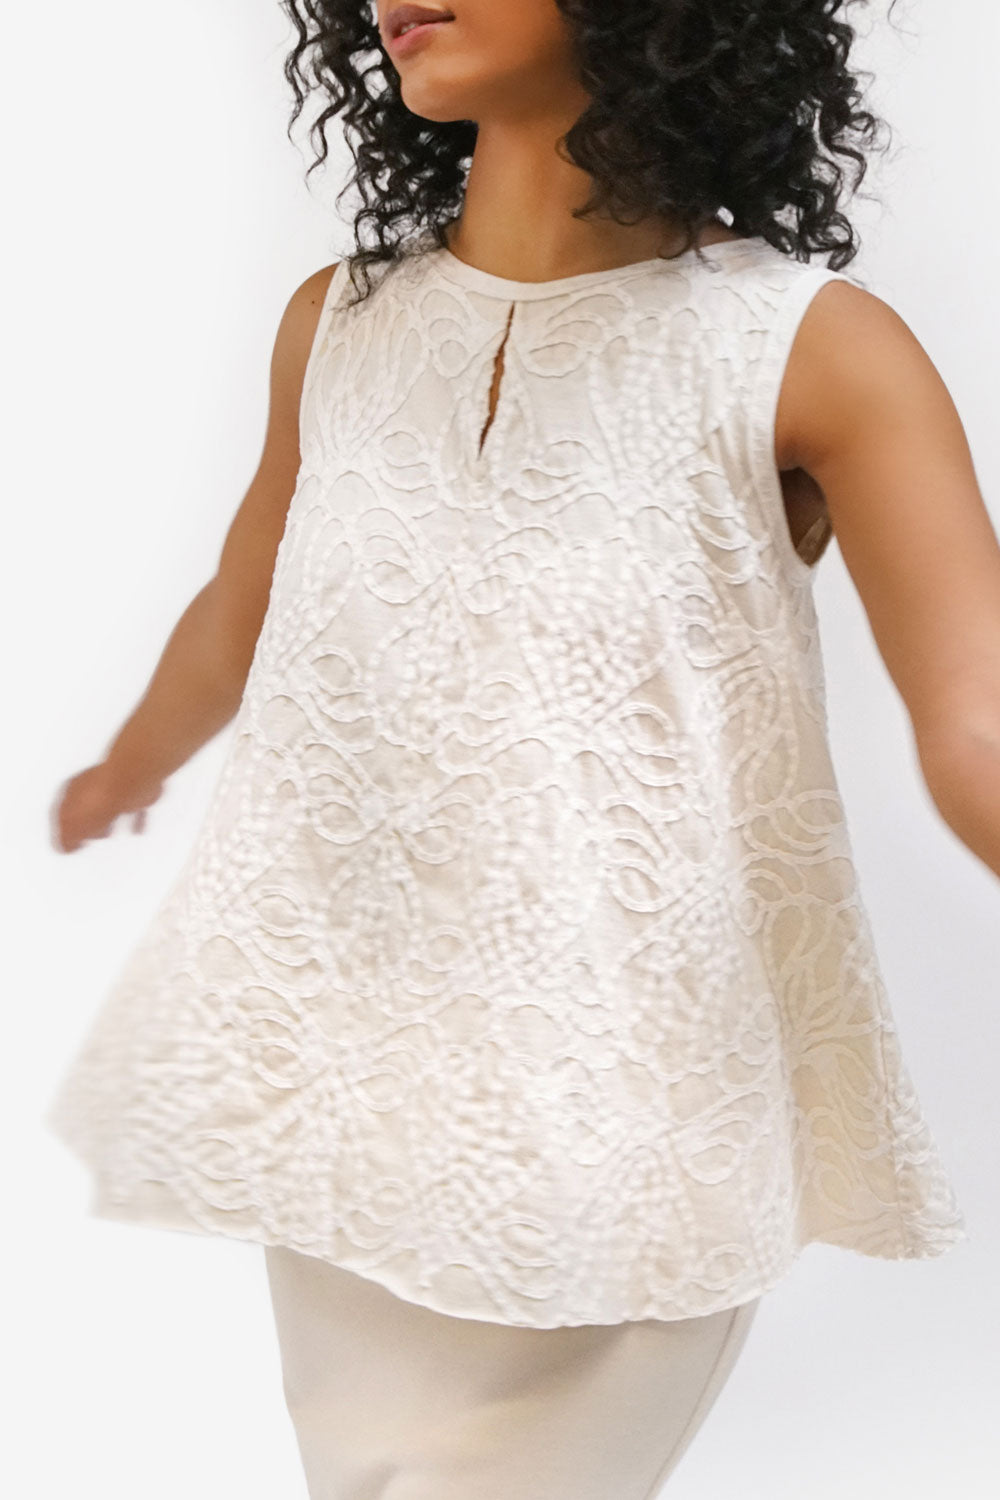 alabama chanin lucy eileen top handsewn sleeveless top in natural